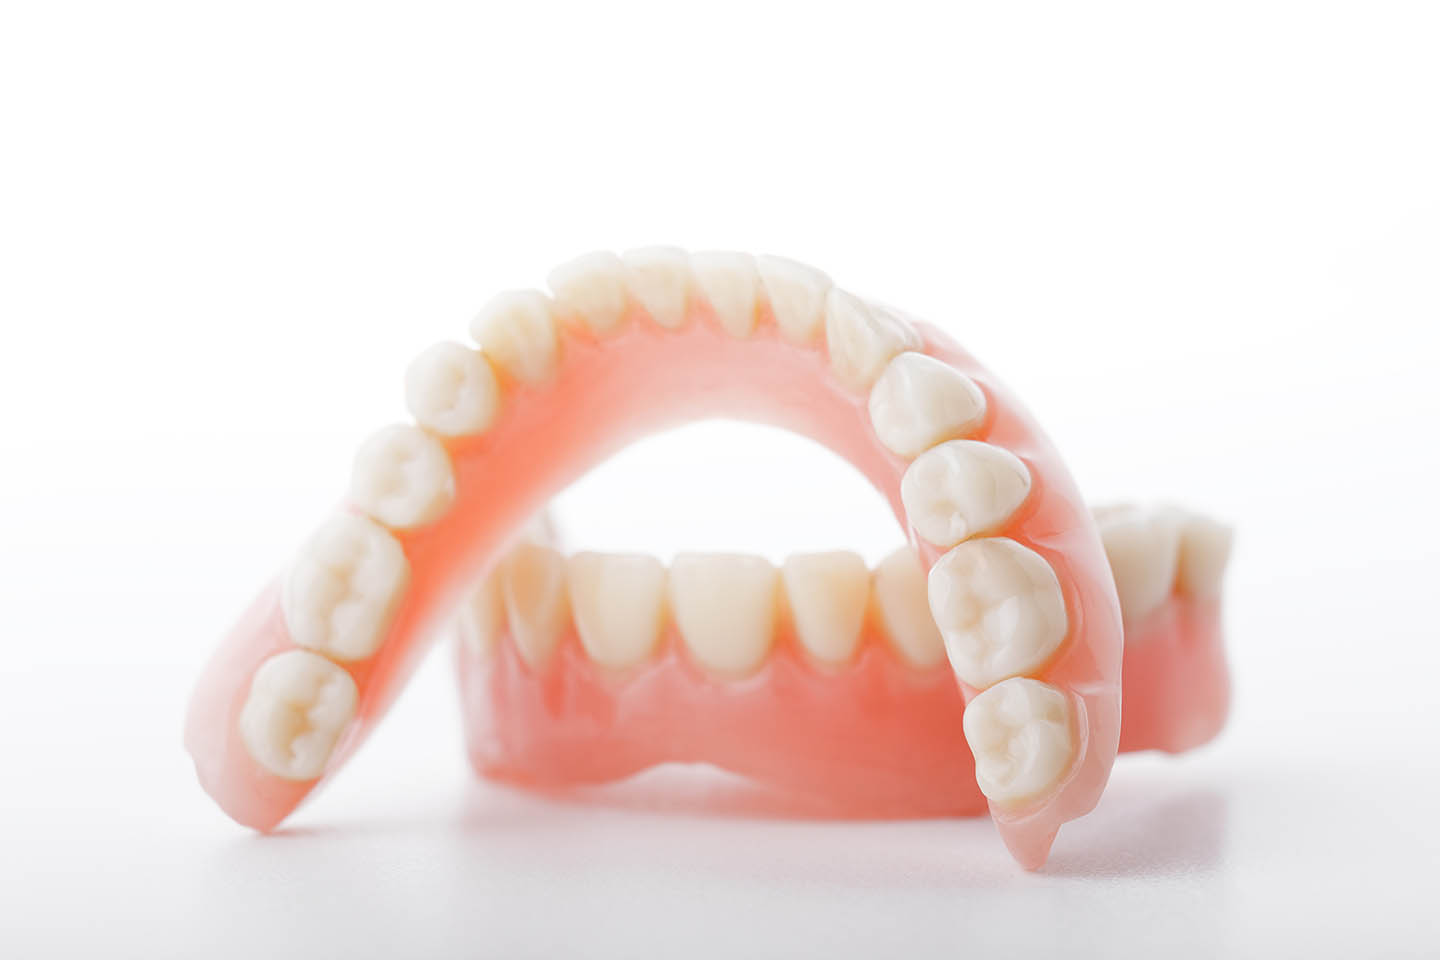 Close up of a pair of dentures